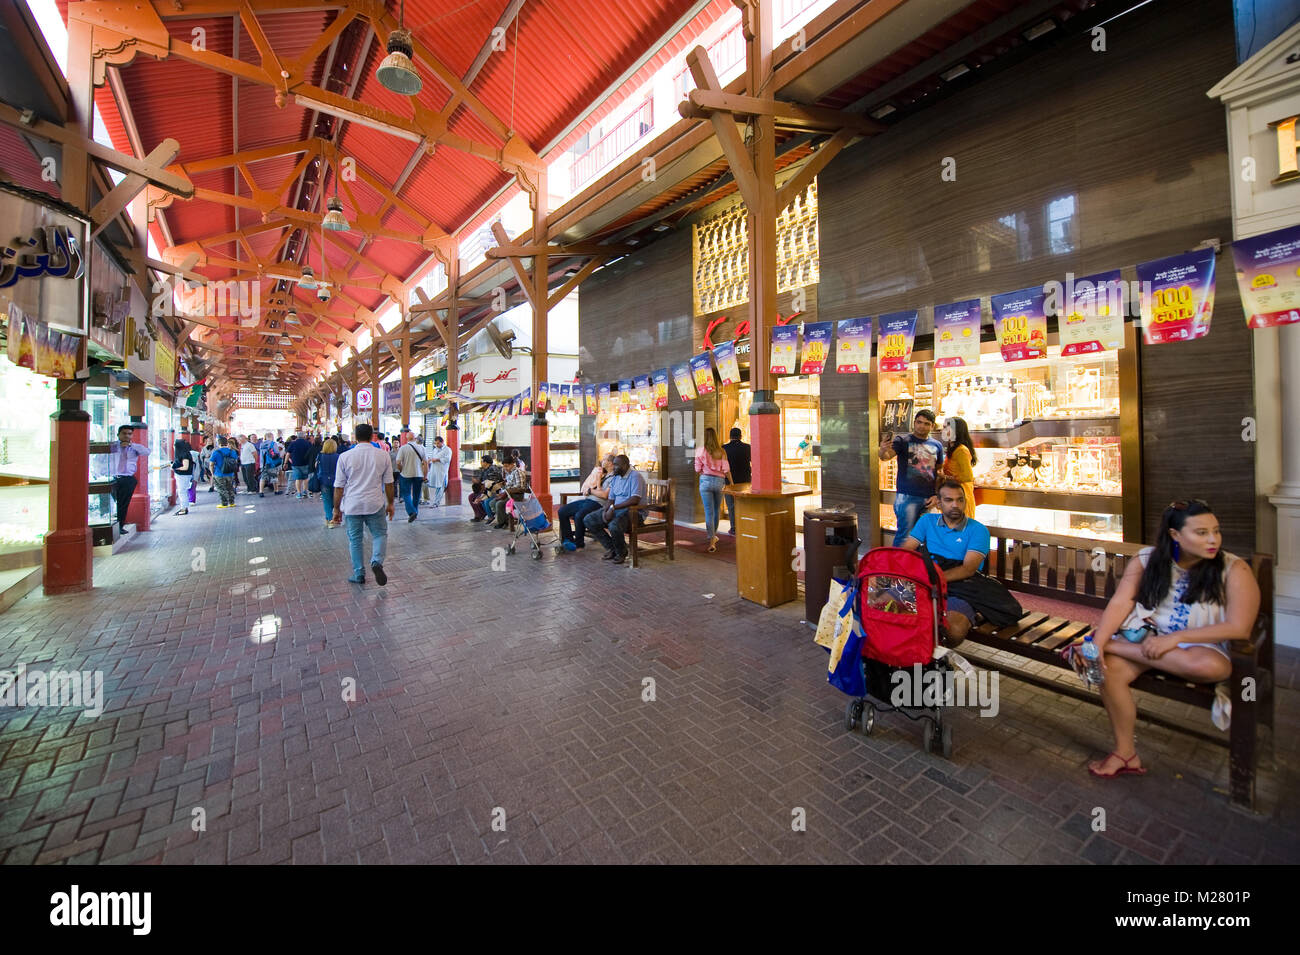 DUBAI, UNITED ARAB EMIRATES - JAN 02, 2018: City of gold is a bazaar in Dubai with a lot of shops who sell golden Stock Photo